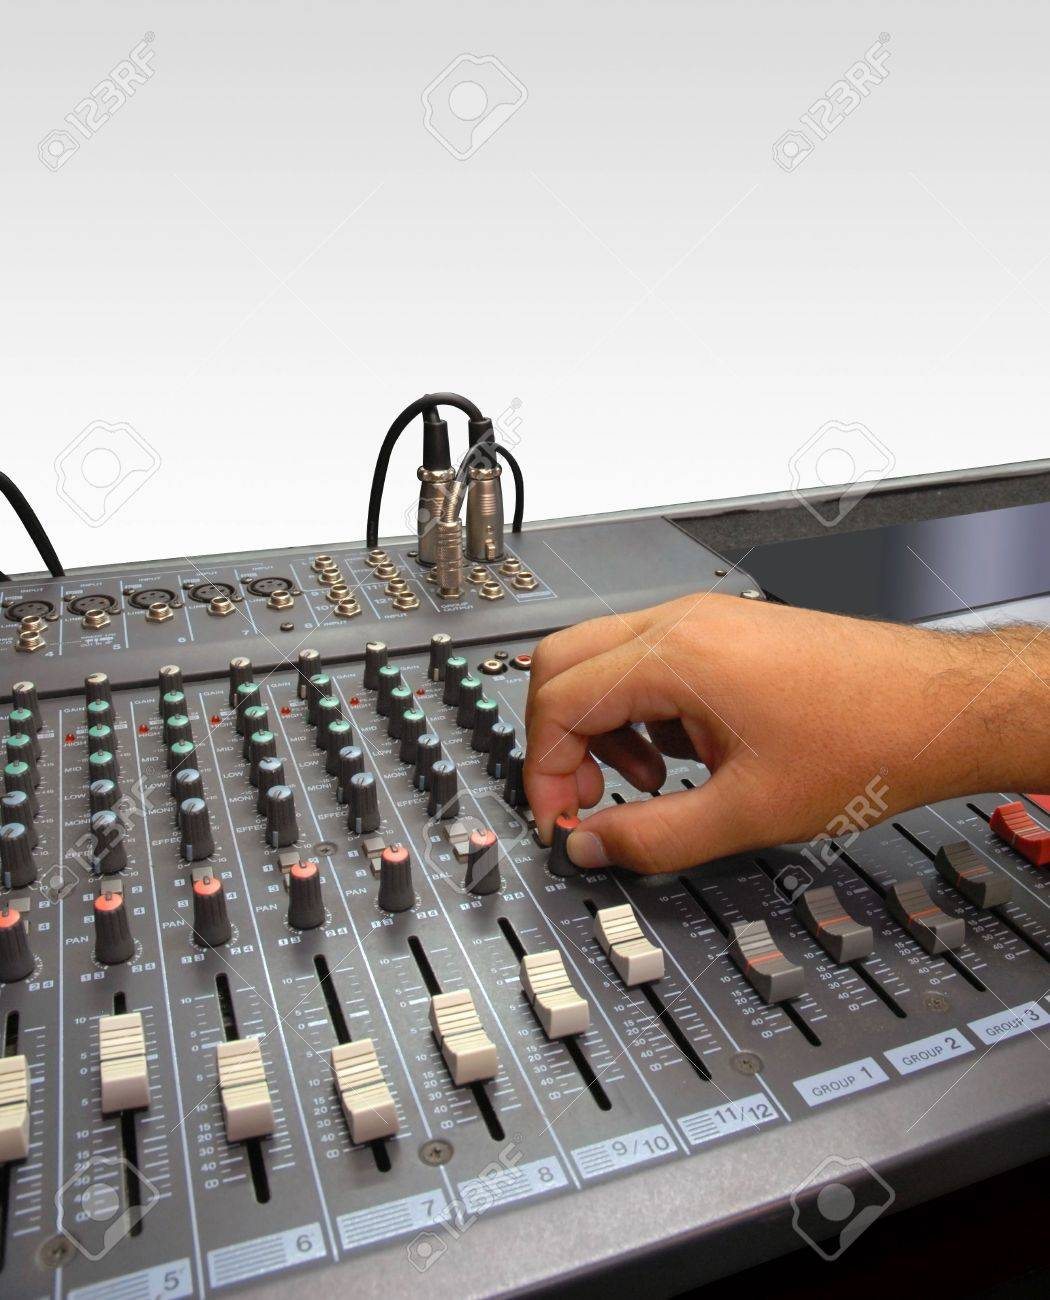 Sound Mixer Console of a Record Studio. Hand of a man making adjustments with a control knob. White background - 5652429